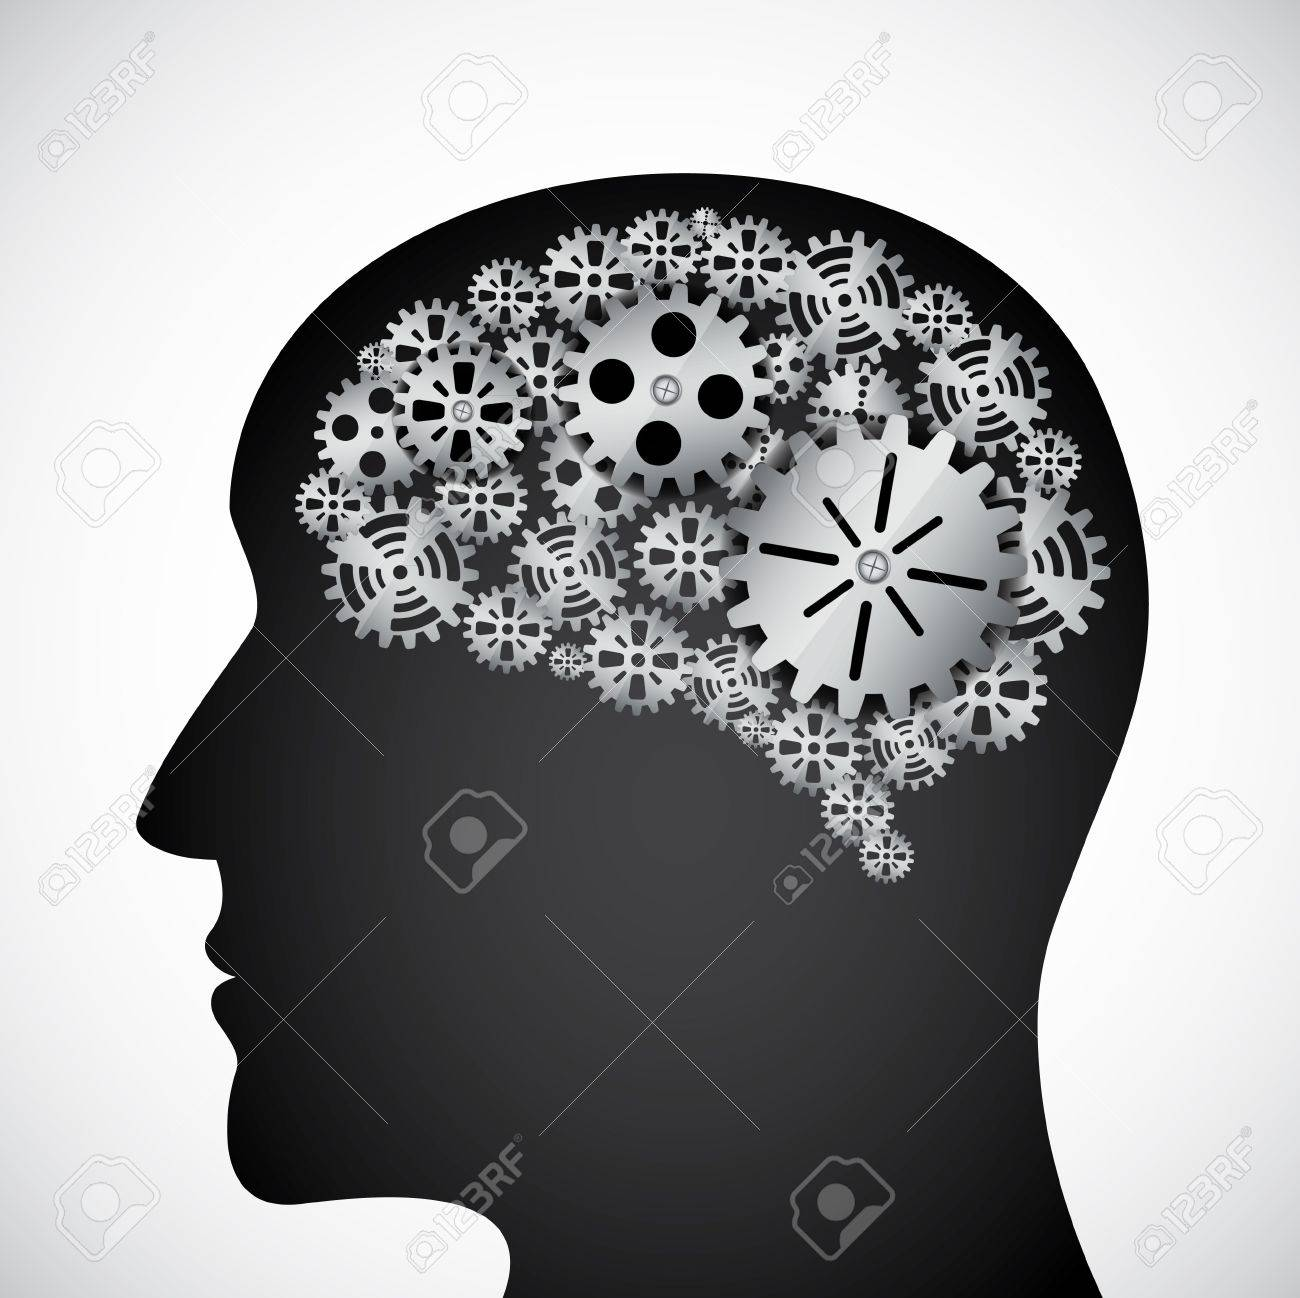 Mind Gear Stock Vector - Image: 39098621